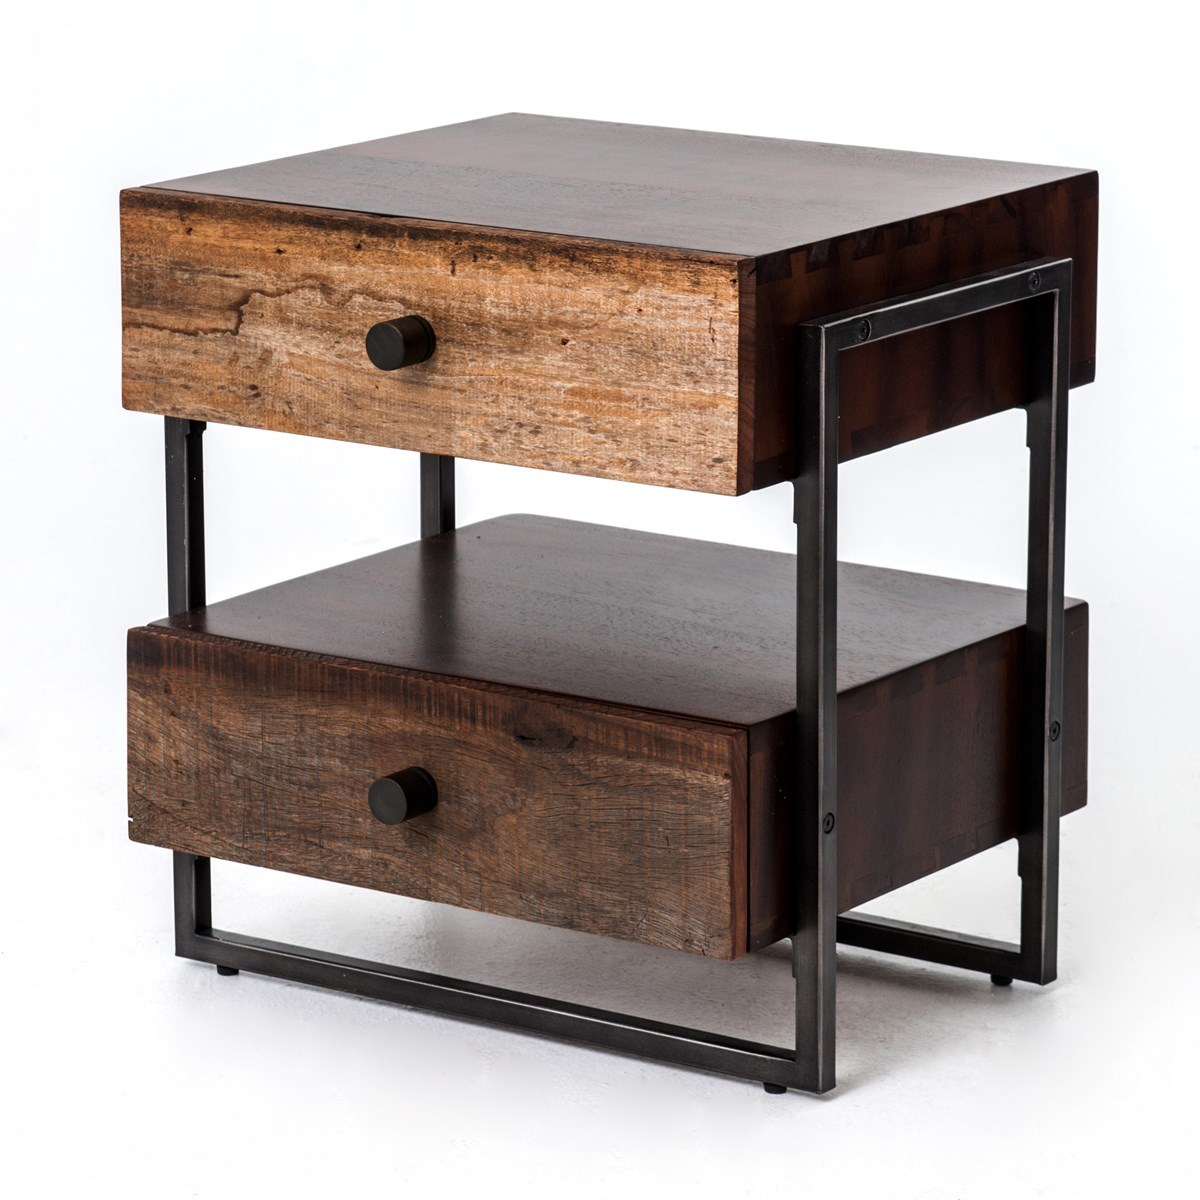 milo industrial drawer end table zin home with drawers acme loft placid cove furniture legends entertainment center magnolia market window frame ashley bailey american heritage